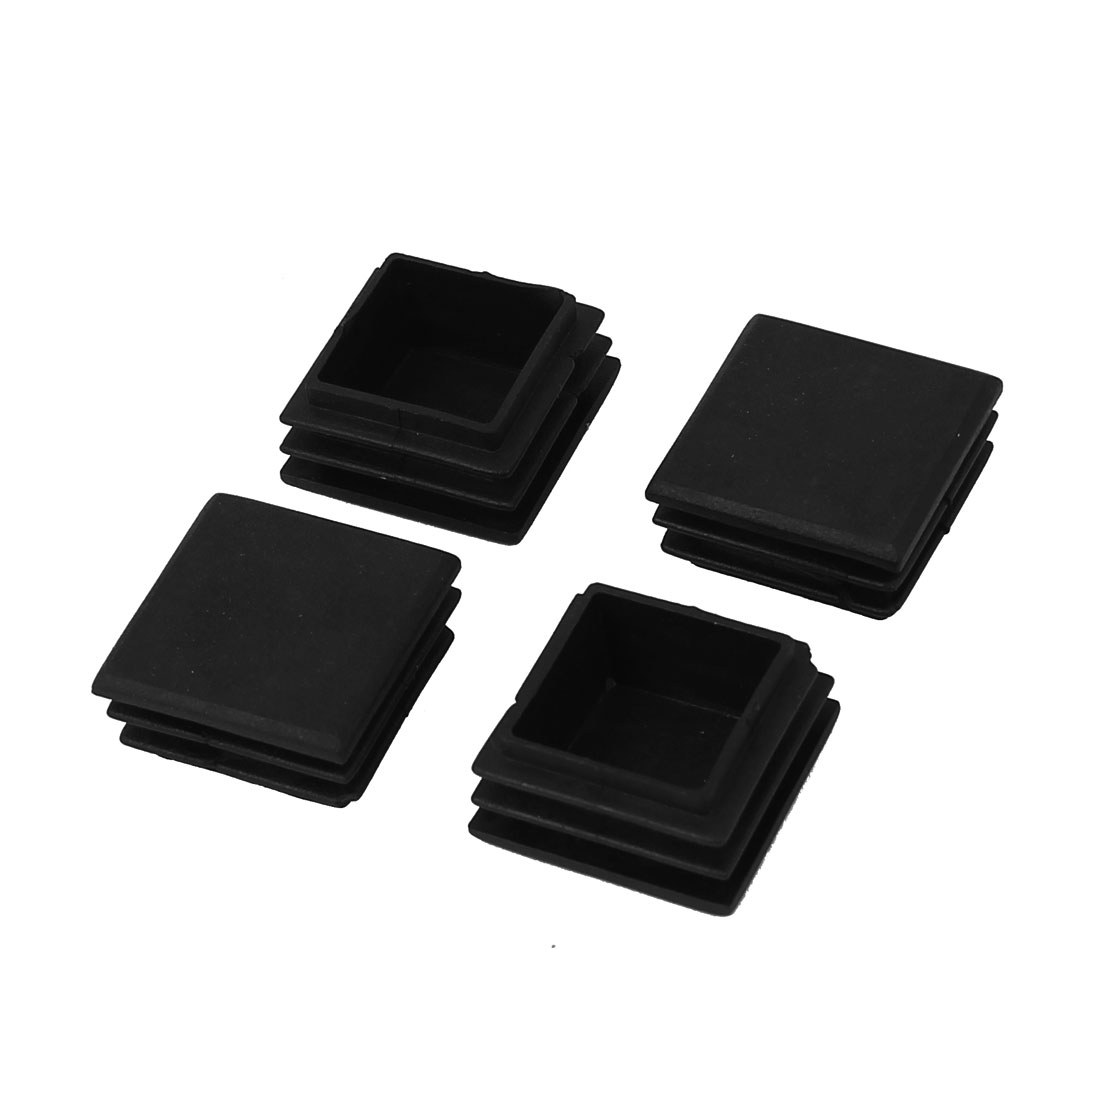 30mm x 30mm Plastic Square Shape Designed Tube Hole Connector Black 4pcs